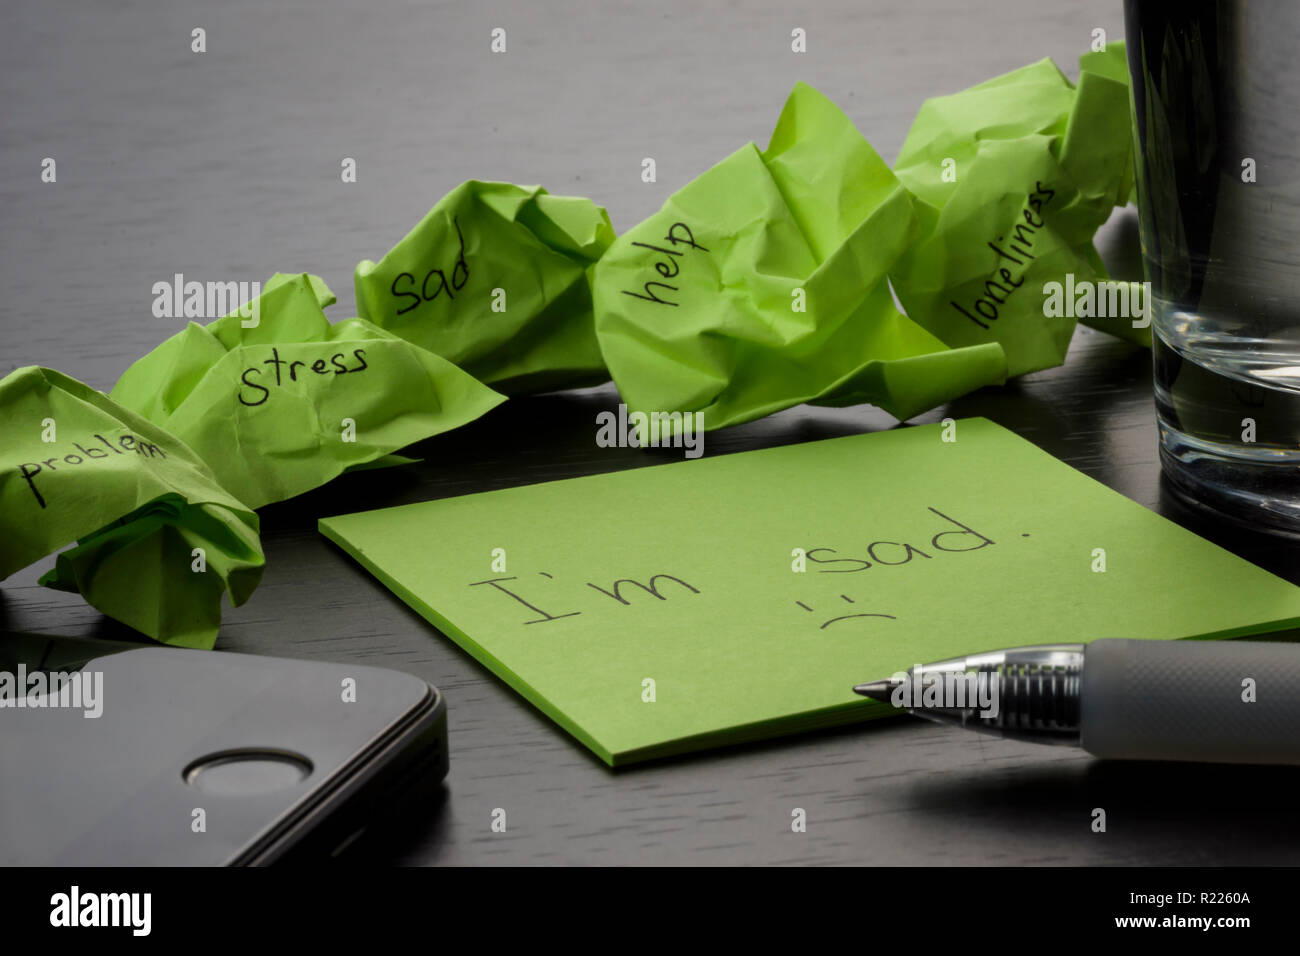 Depression. The phrase ''I'm sa' is written on a green sticky note on wooden black table. Crumpled green sticky notes are scattered with texts written. - Stock Image